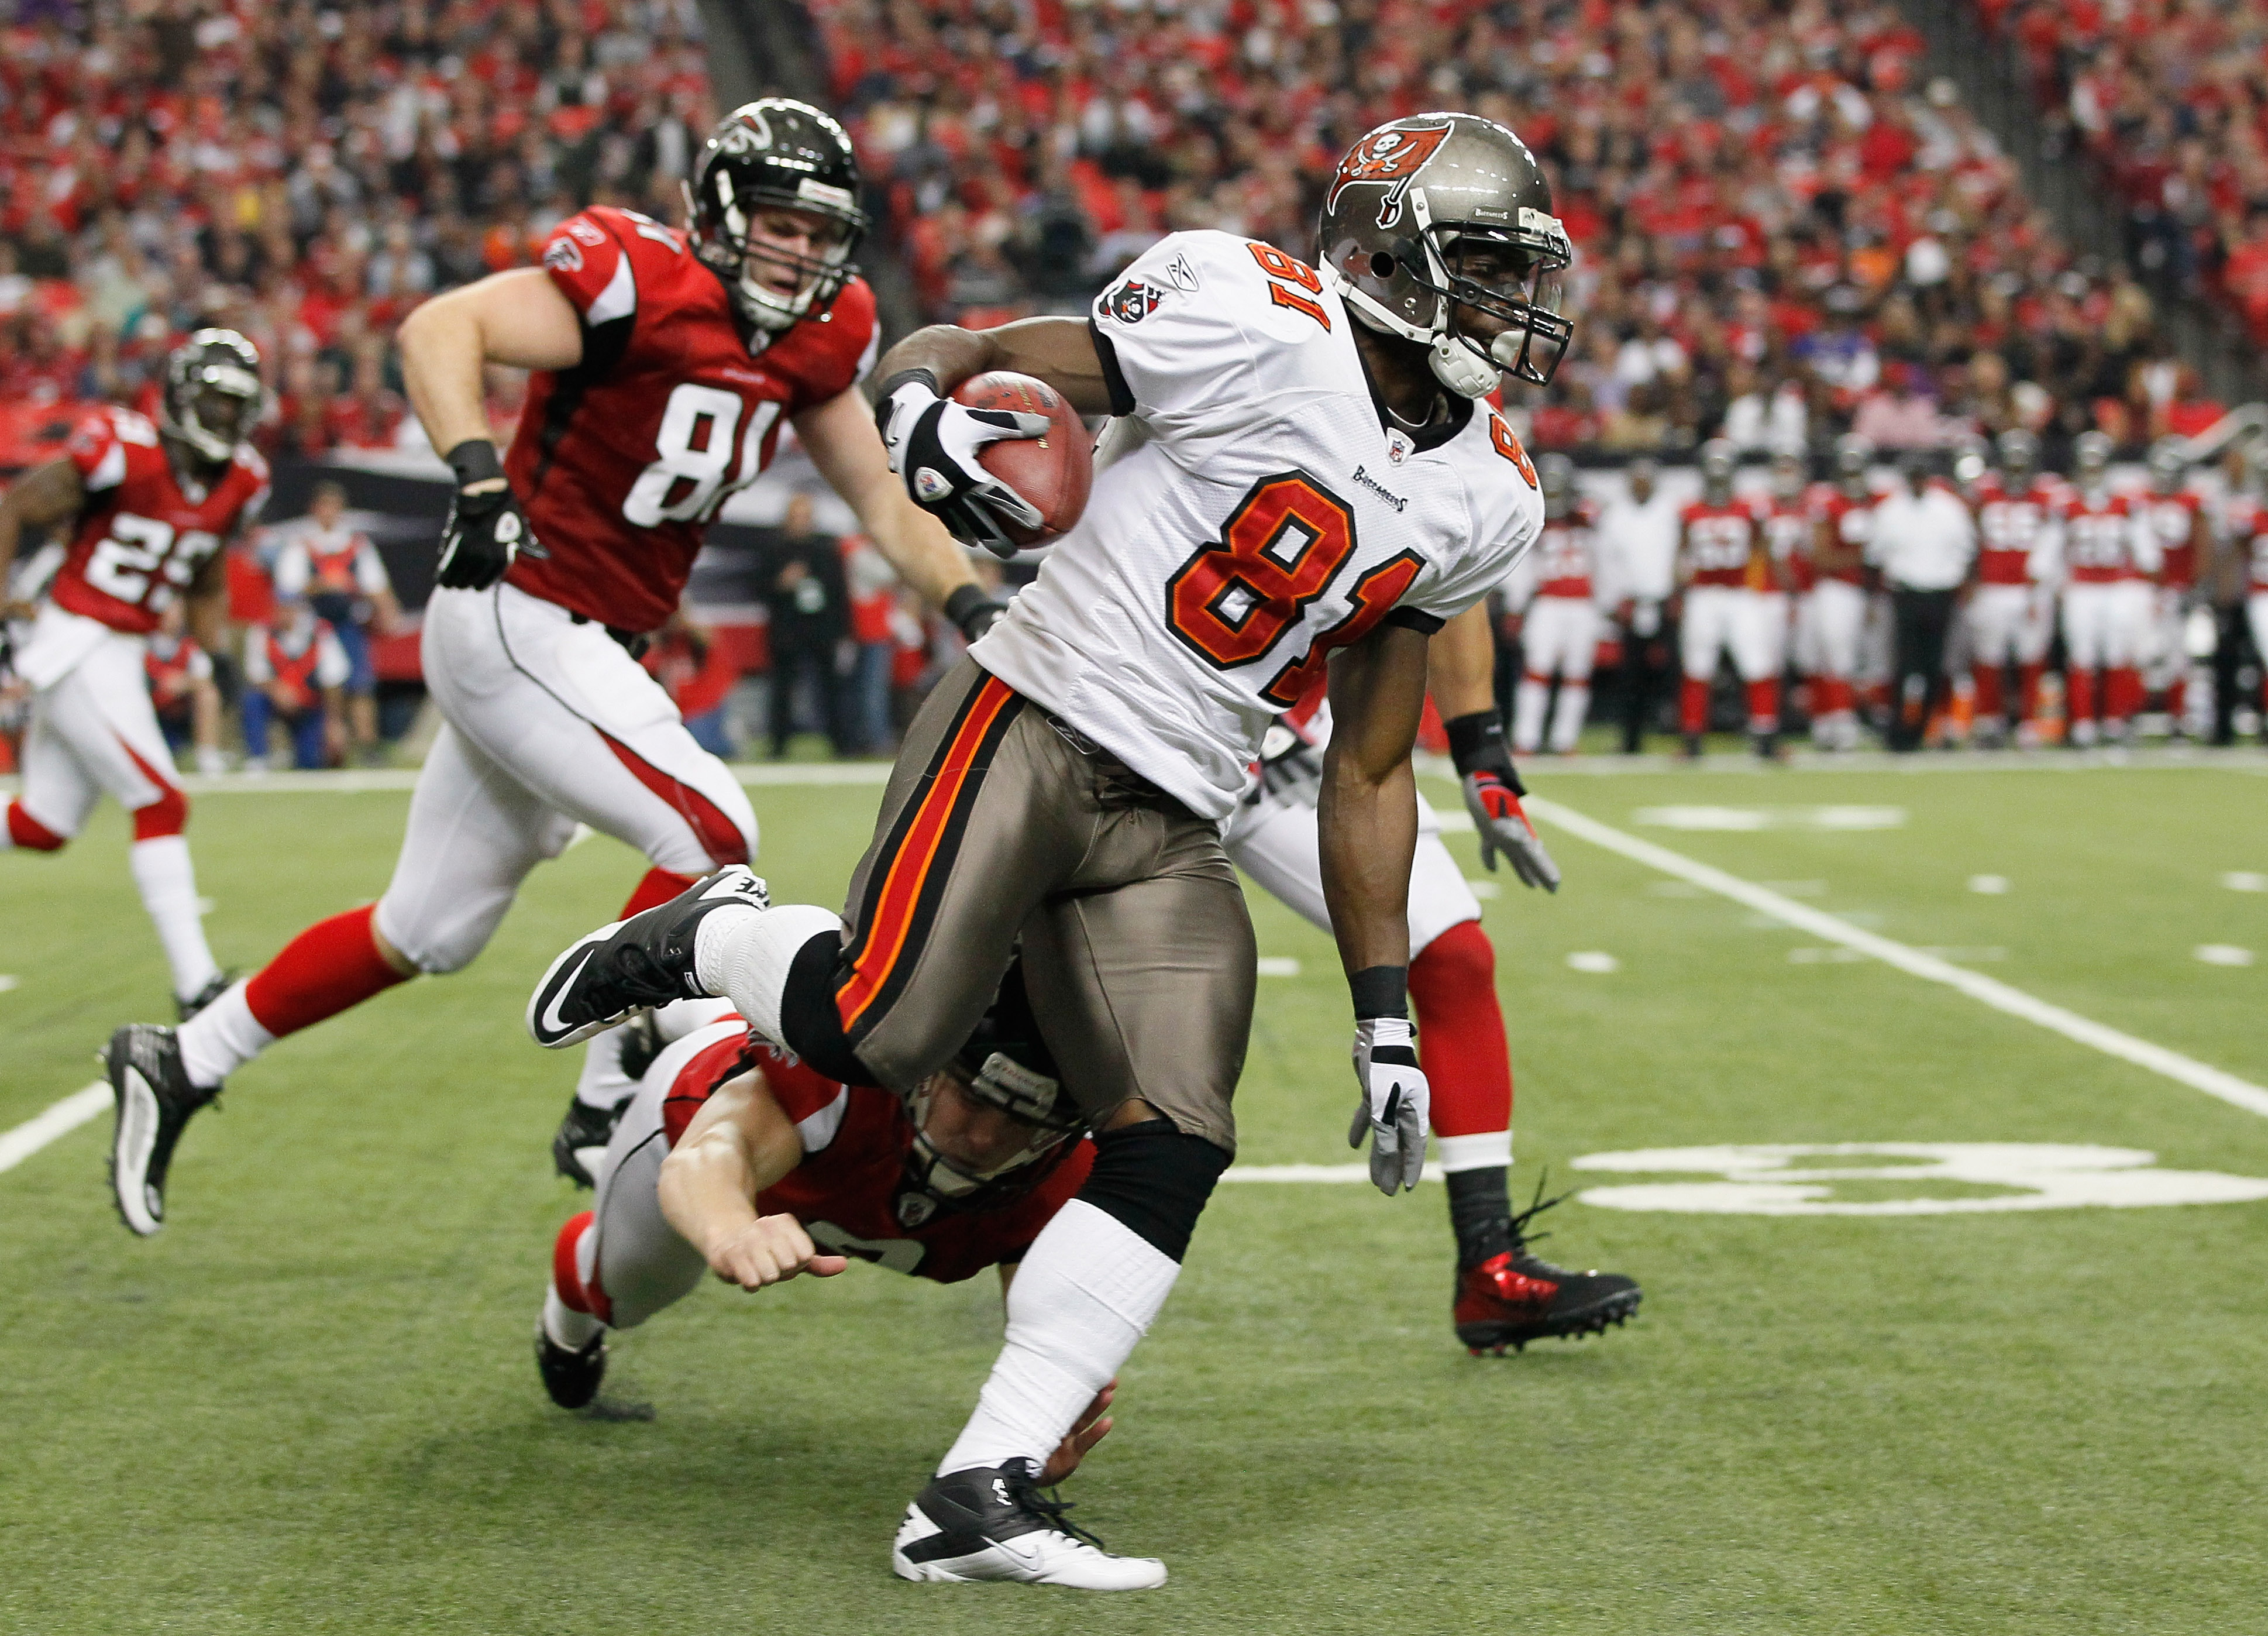 ATLANTA - NOVEMBER 07:  Micheal Spurlock #81 of the Tampa Bay Buccaneers returns a punt and avoids a tackle by Michael Koenen #9 of the Atlanta Falcons for a touchdown at Georgia Dome on November 7, 2010 in Atlanta, Georgia.  (Photo by Kevin C. Cox/Getty